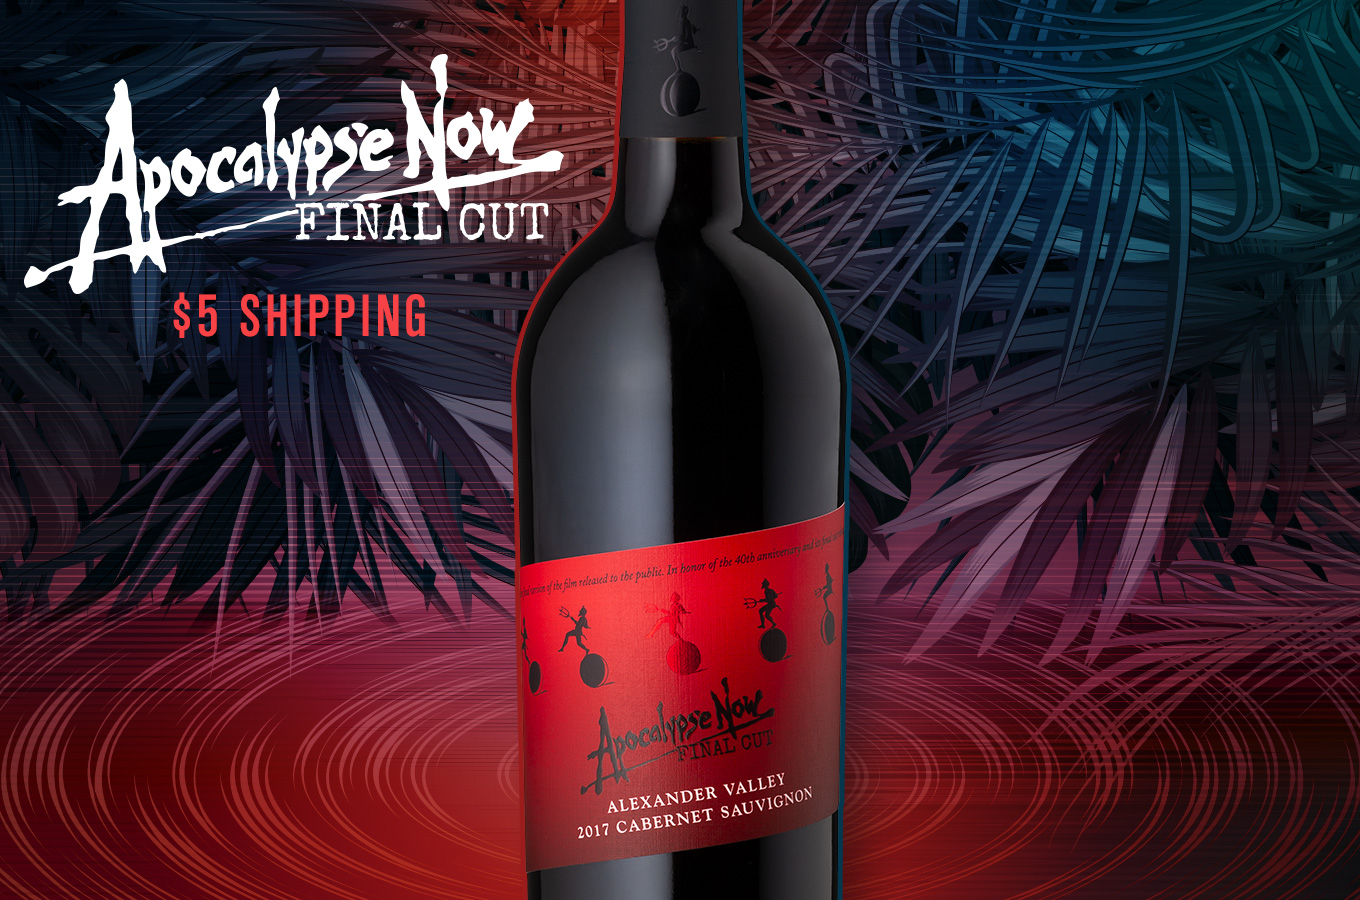 Apocalypse Now Final Cut Cabernet, $5 Shipping